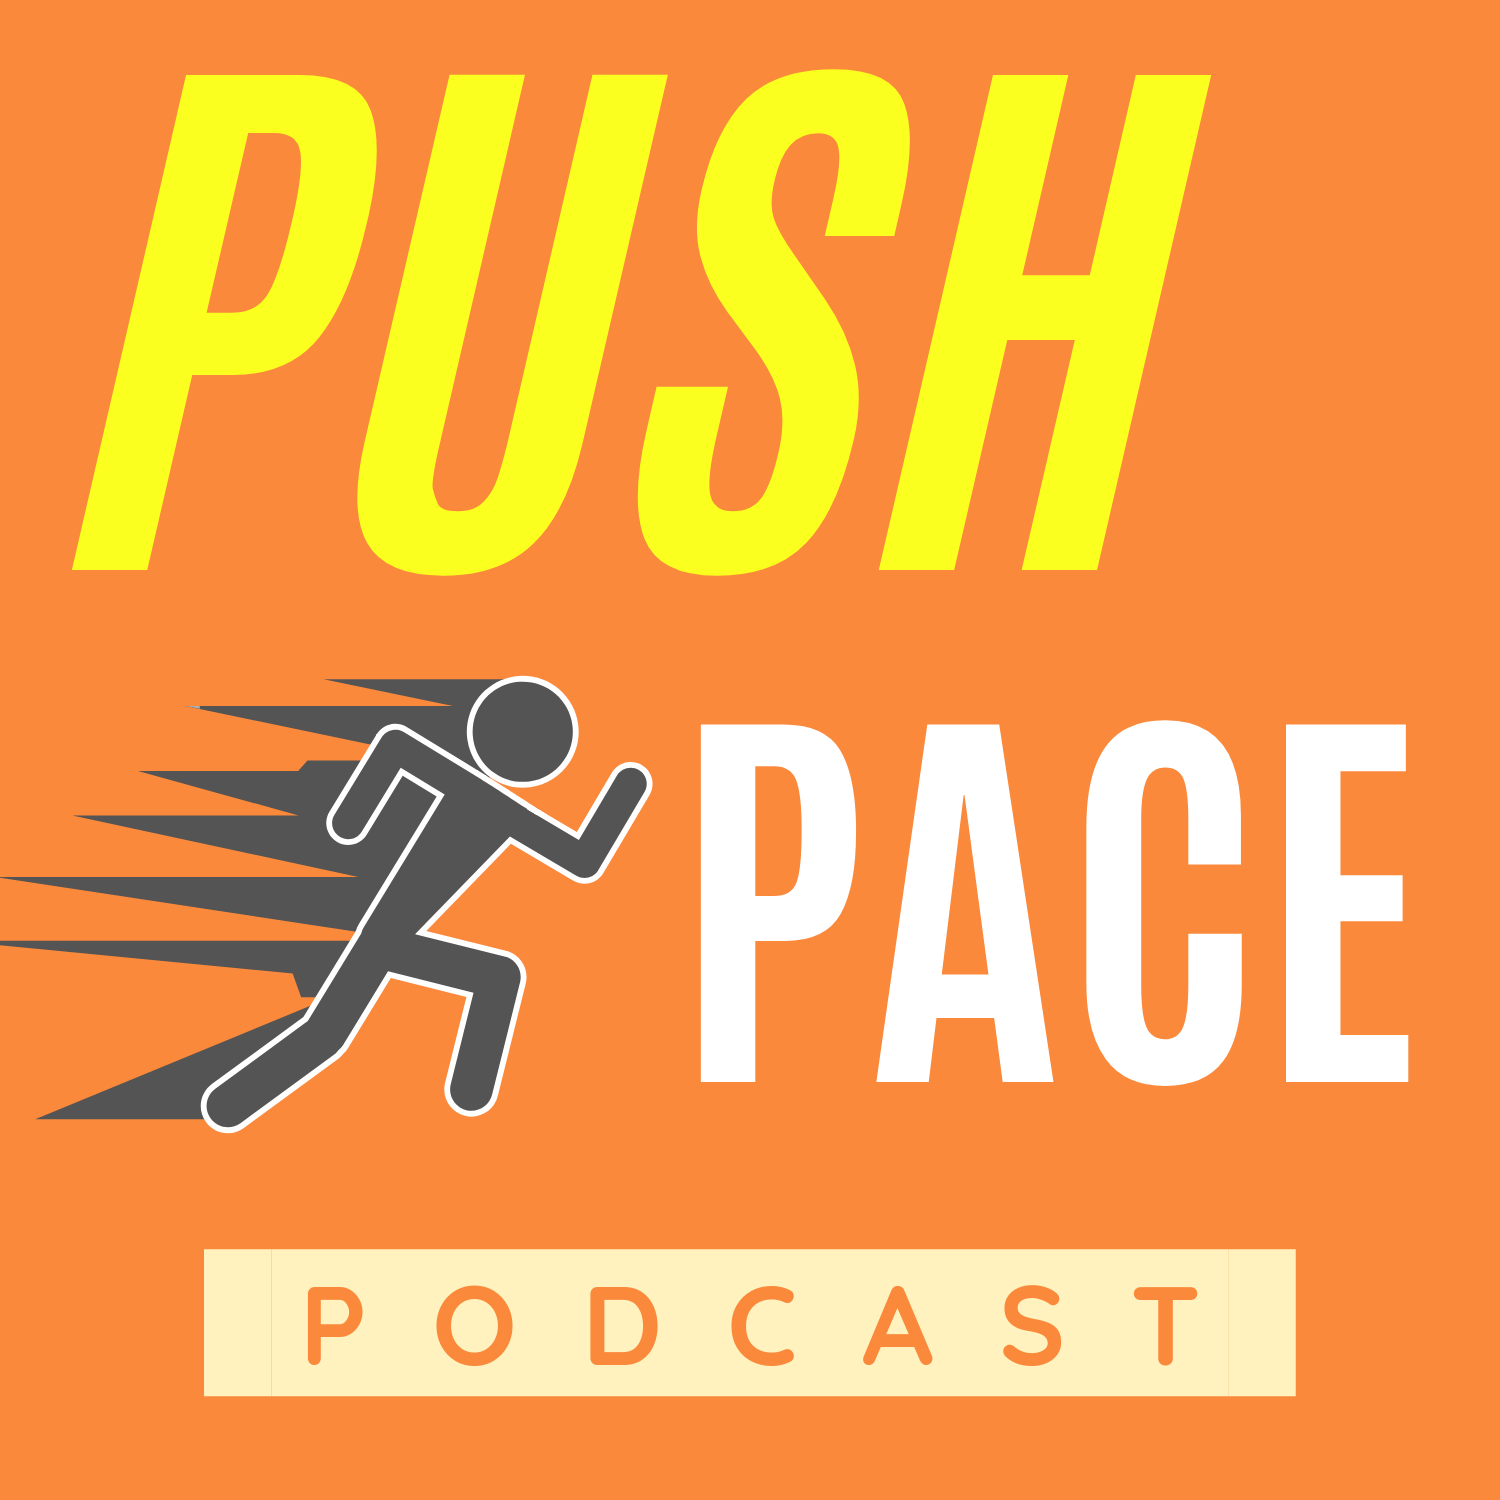 Push Pace Podcast